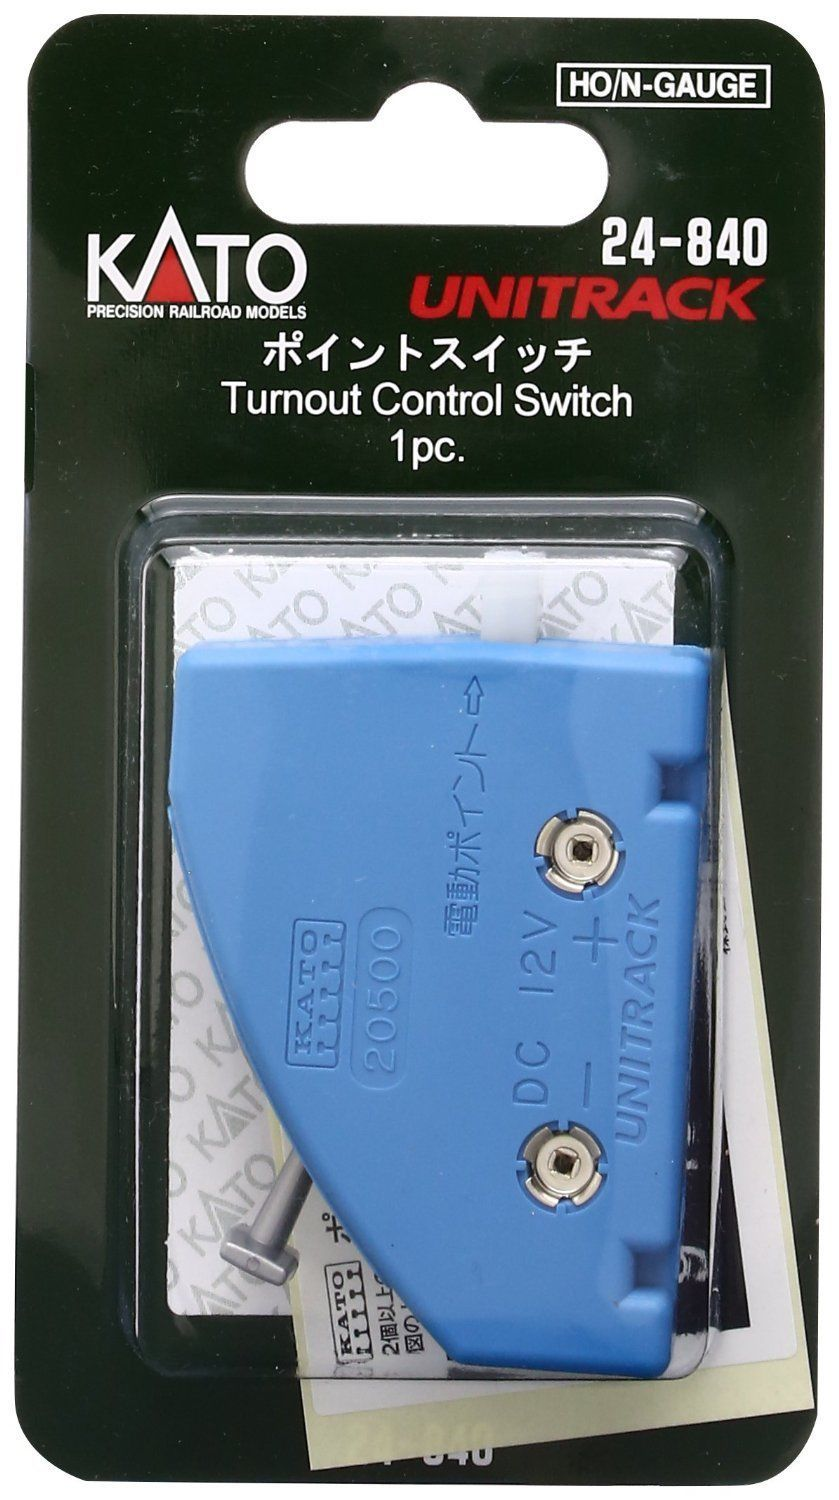 765 Kato 24 840 Turnout Control Switch N Scale Japan Ebay Model Railway Collectibles